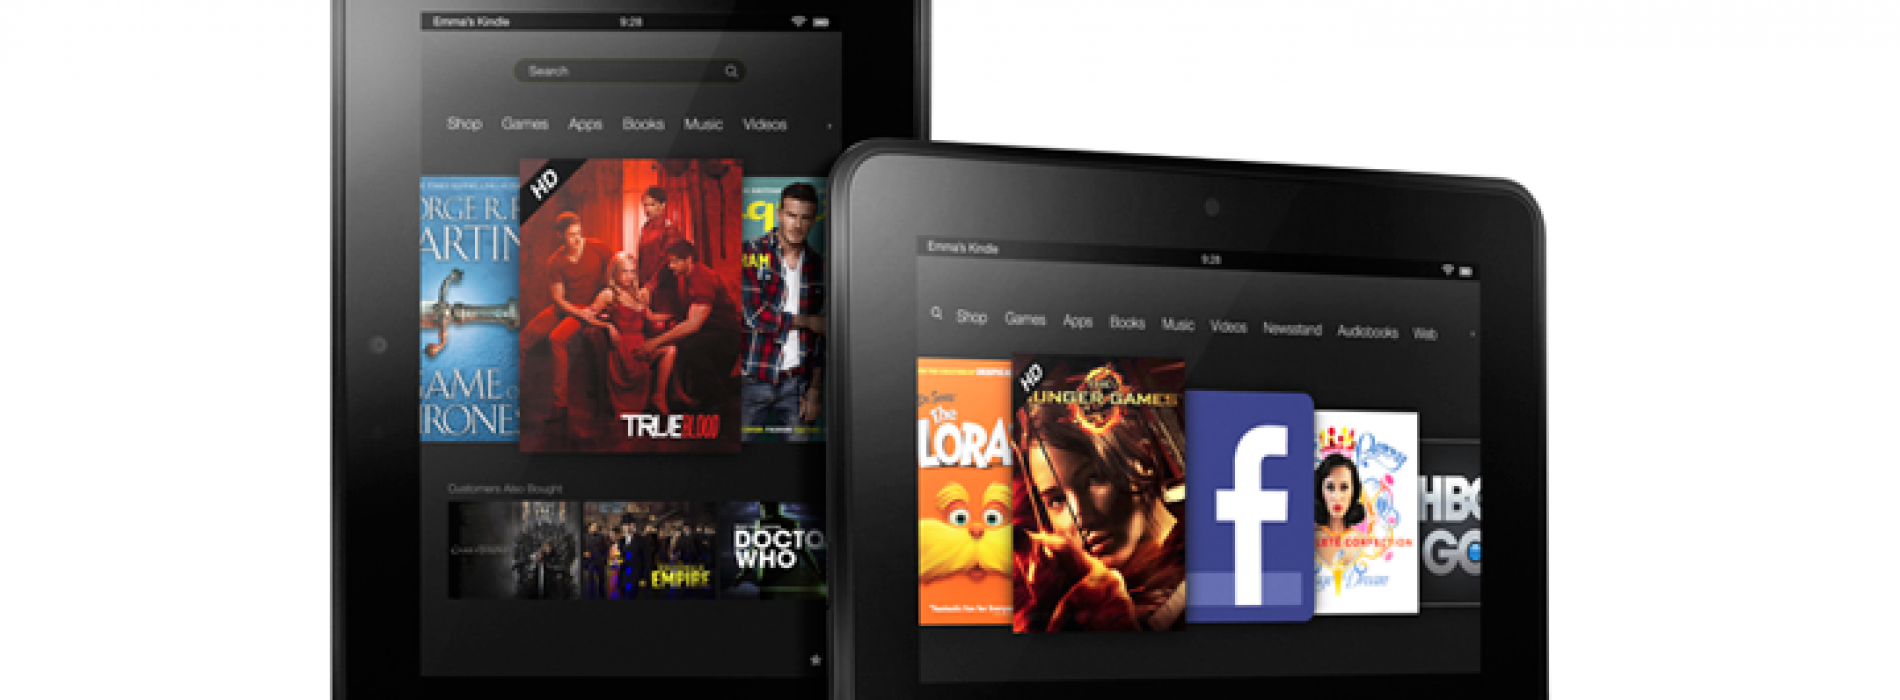 More fleshed-out details surface for upcoming Kindle Fire models